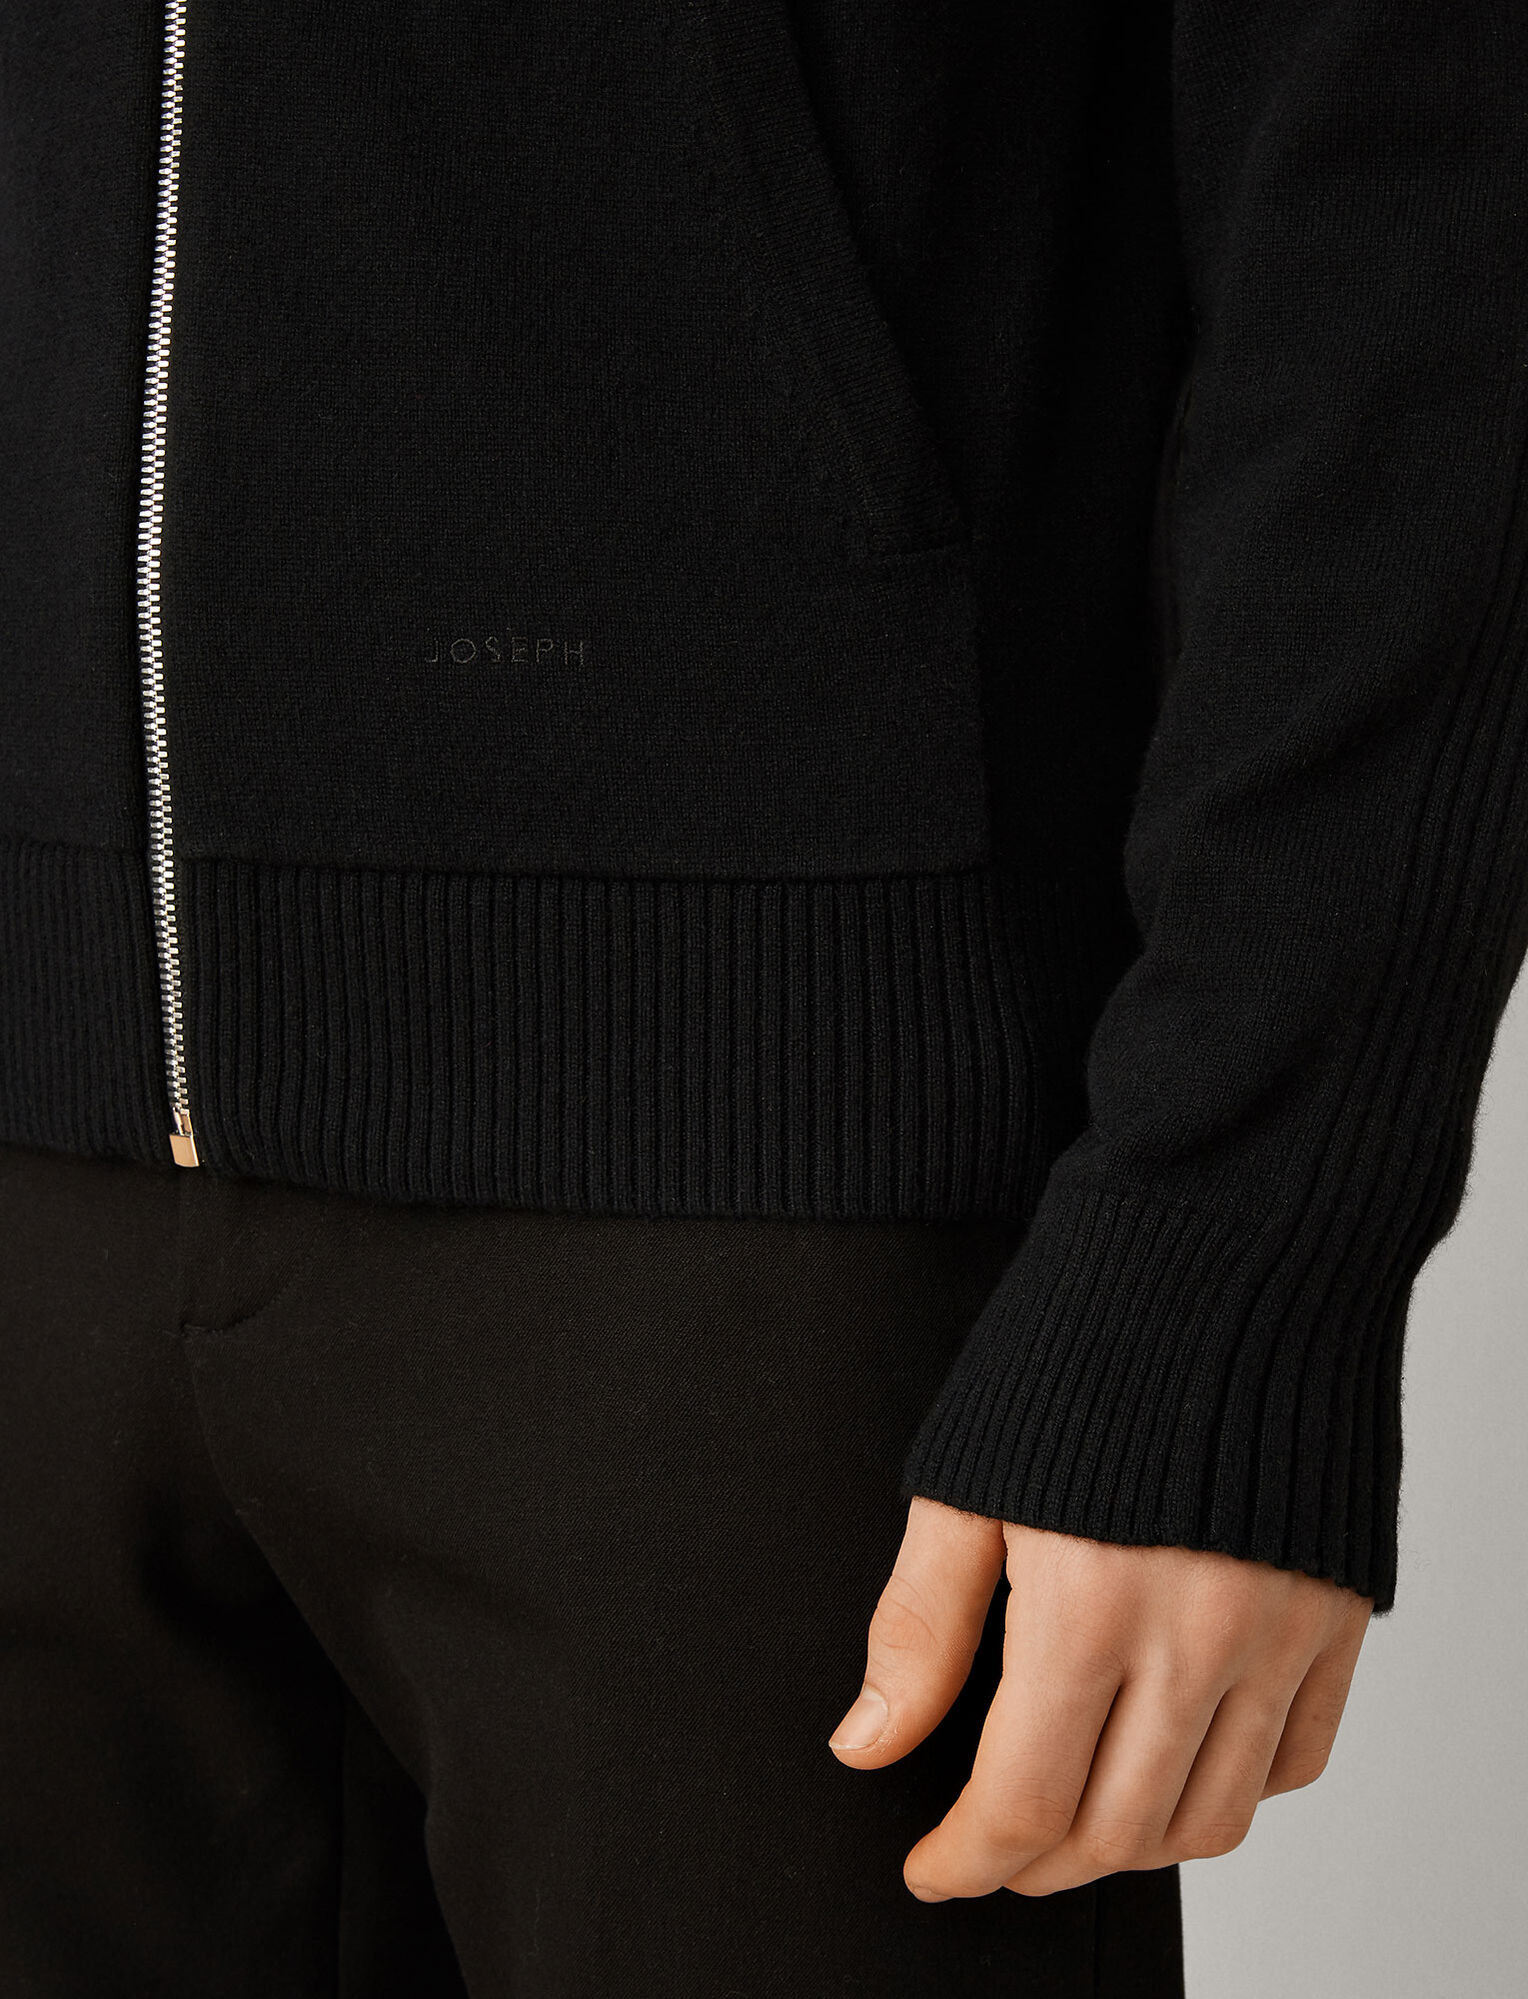 Joseph, Mongolian Cashmere Knit Hoodie, in BLACK